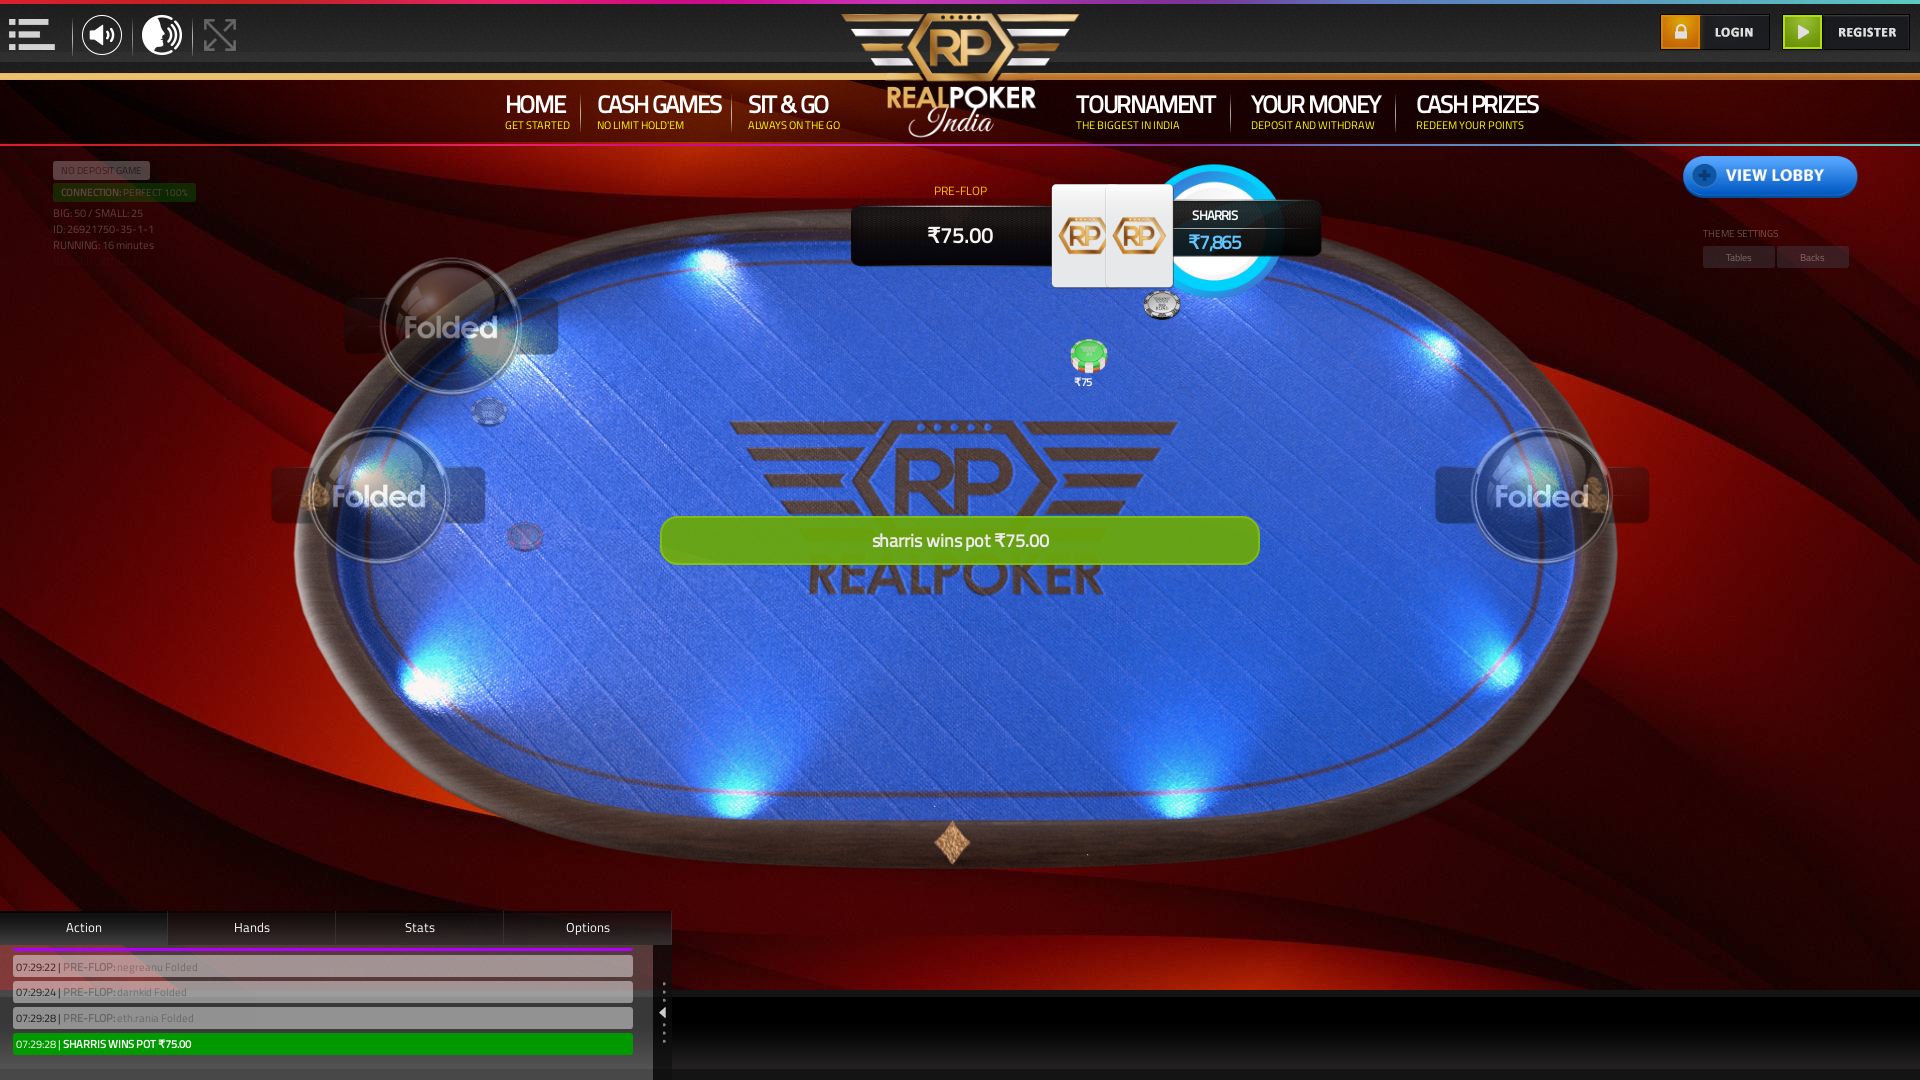 Online poker on a 10 player table in the 16th minute match up